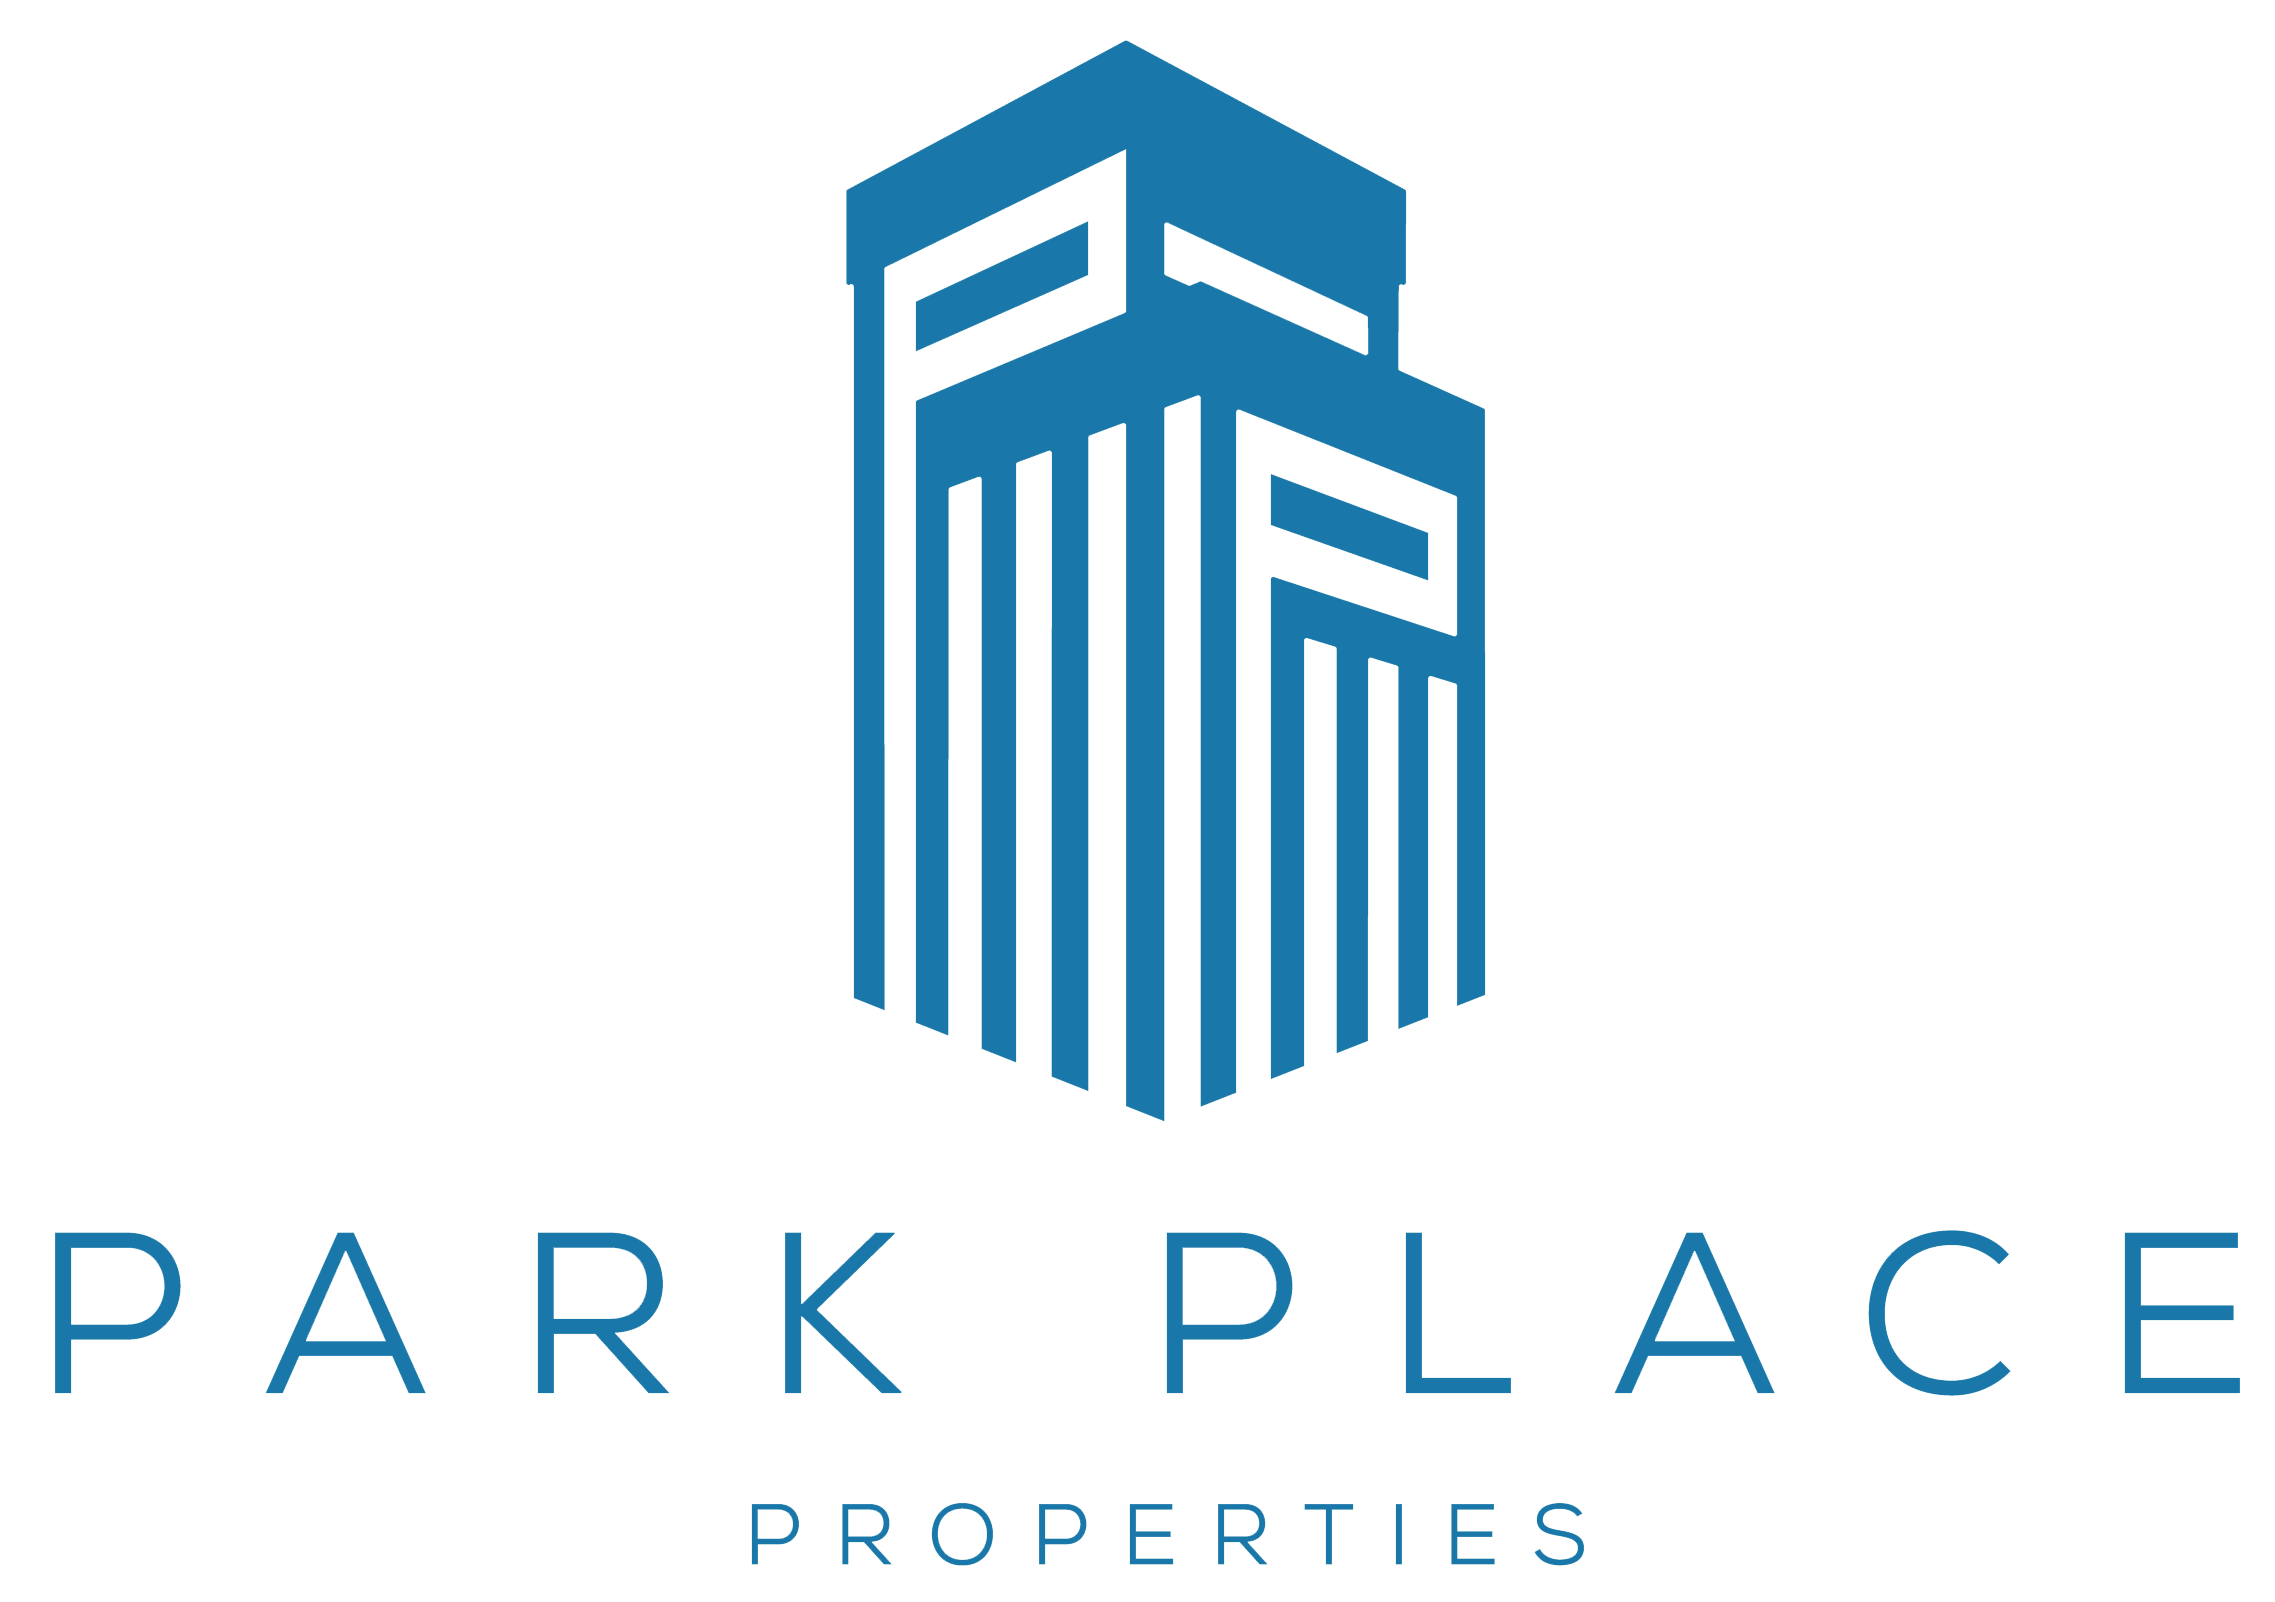 Park Place Properties Phoenix Property Management Provides Solutions for Airbnb and Short-Term Rentals in Phoenix, Arizona 9